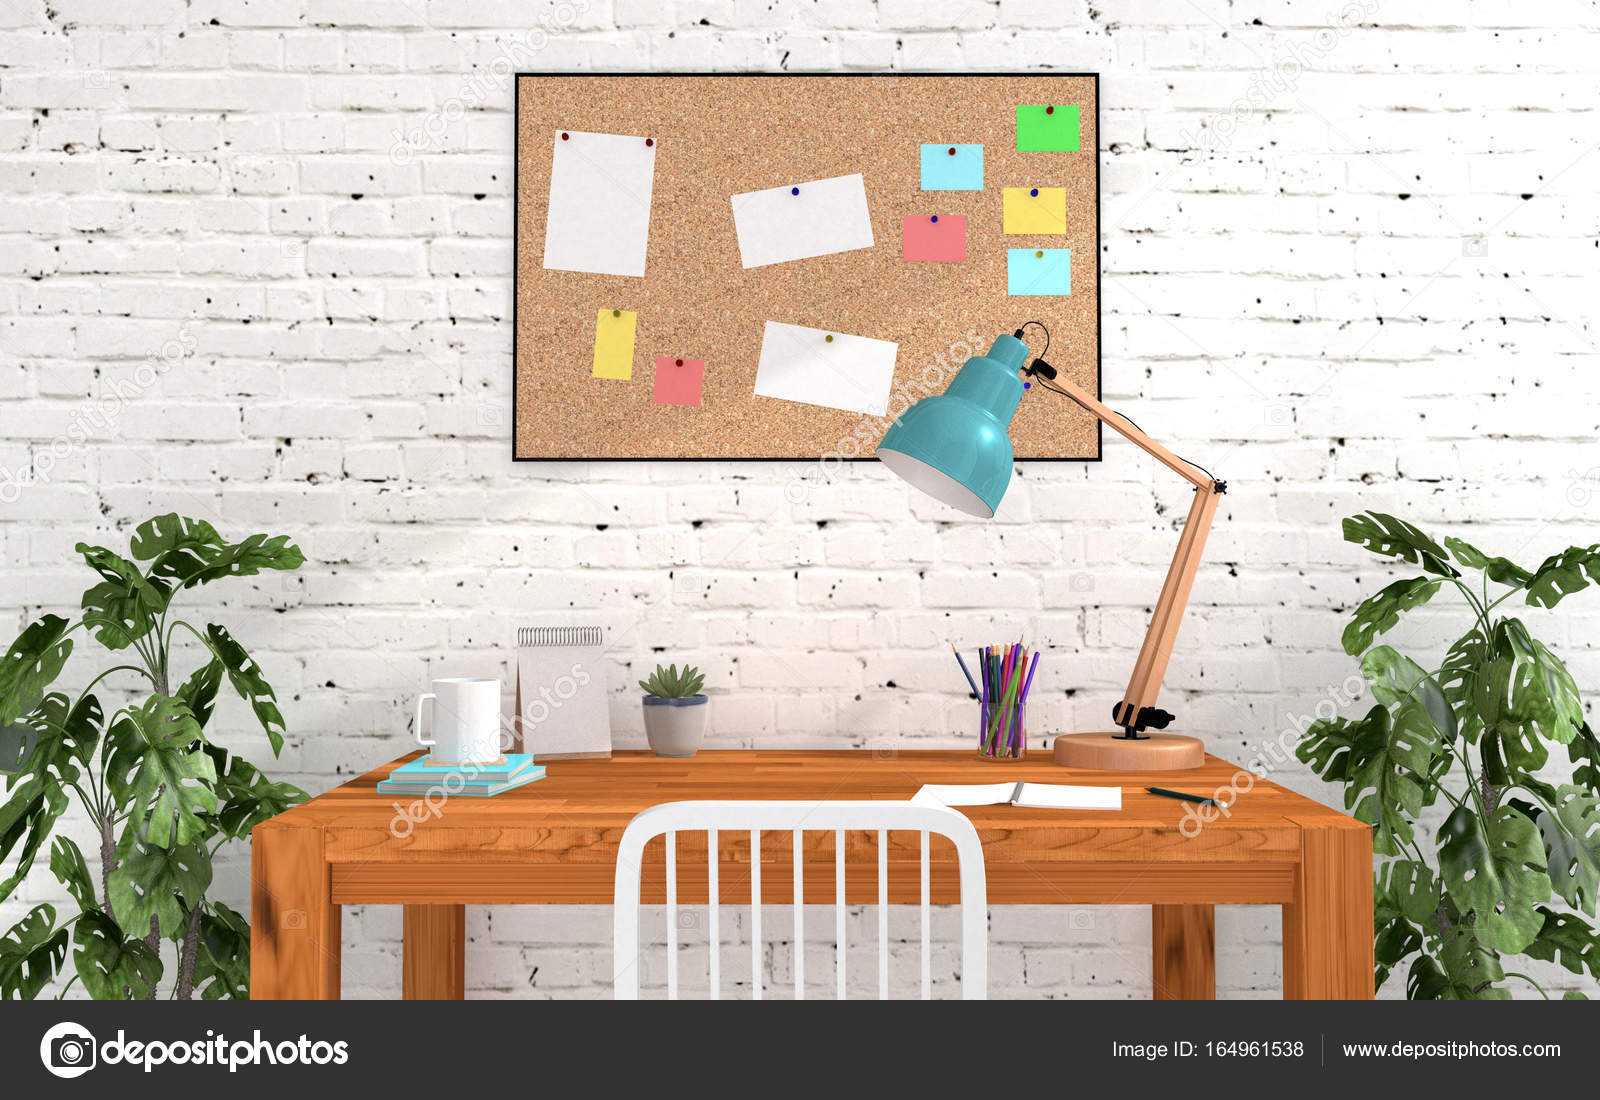 Home Office Room Interior In Modern And Loft Decoration With Cork Board Blank Memo Paper Study Or Working Desk Table Lamp Photo By Geerati Gmail